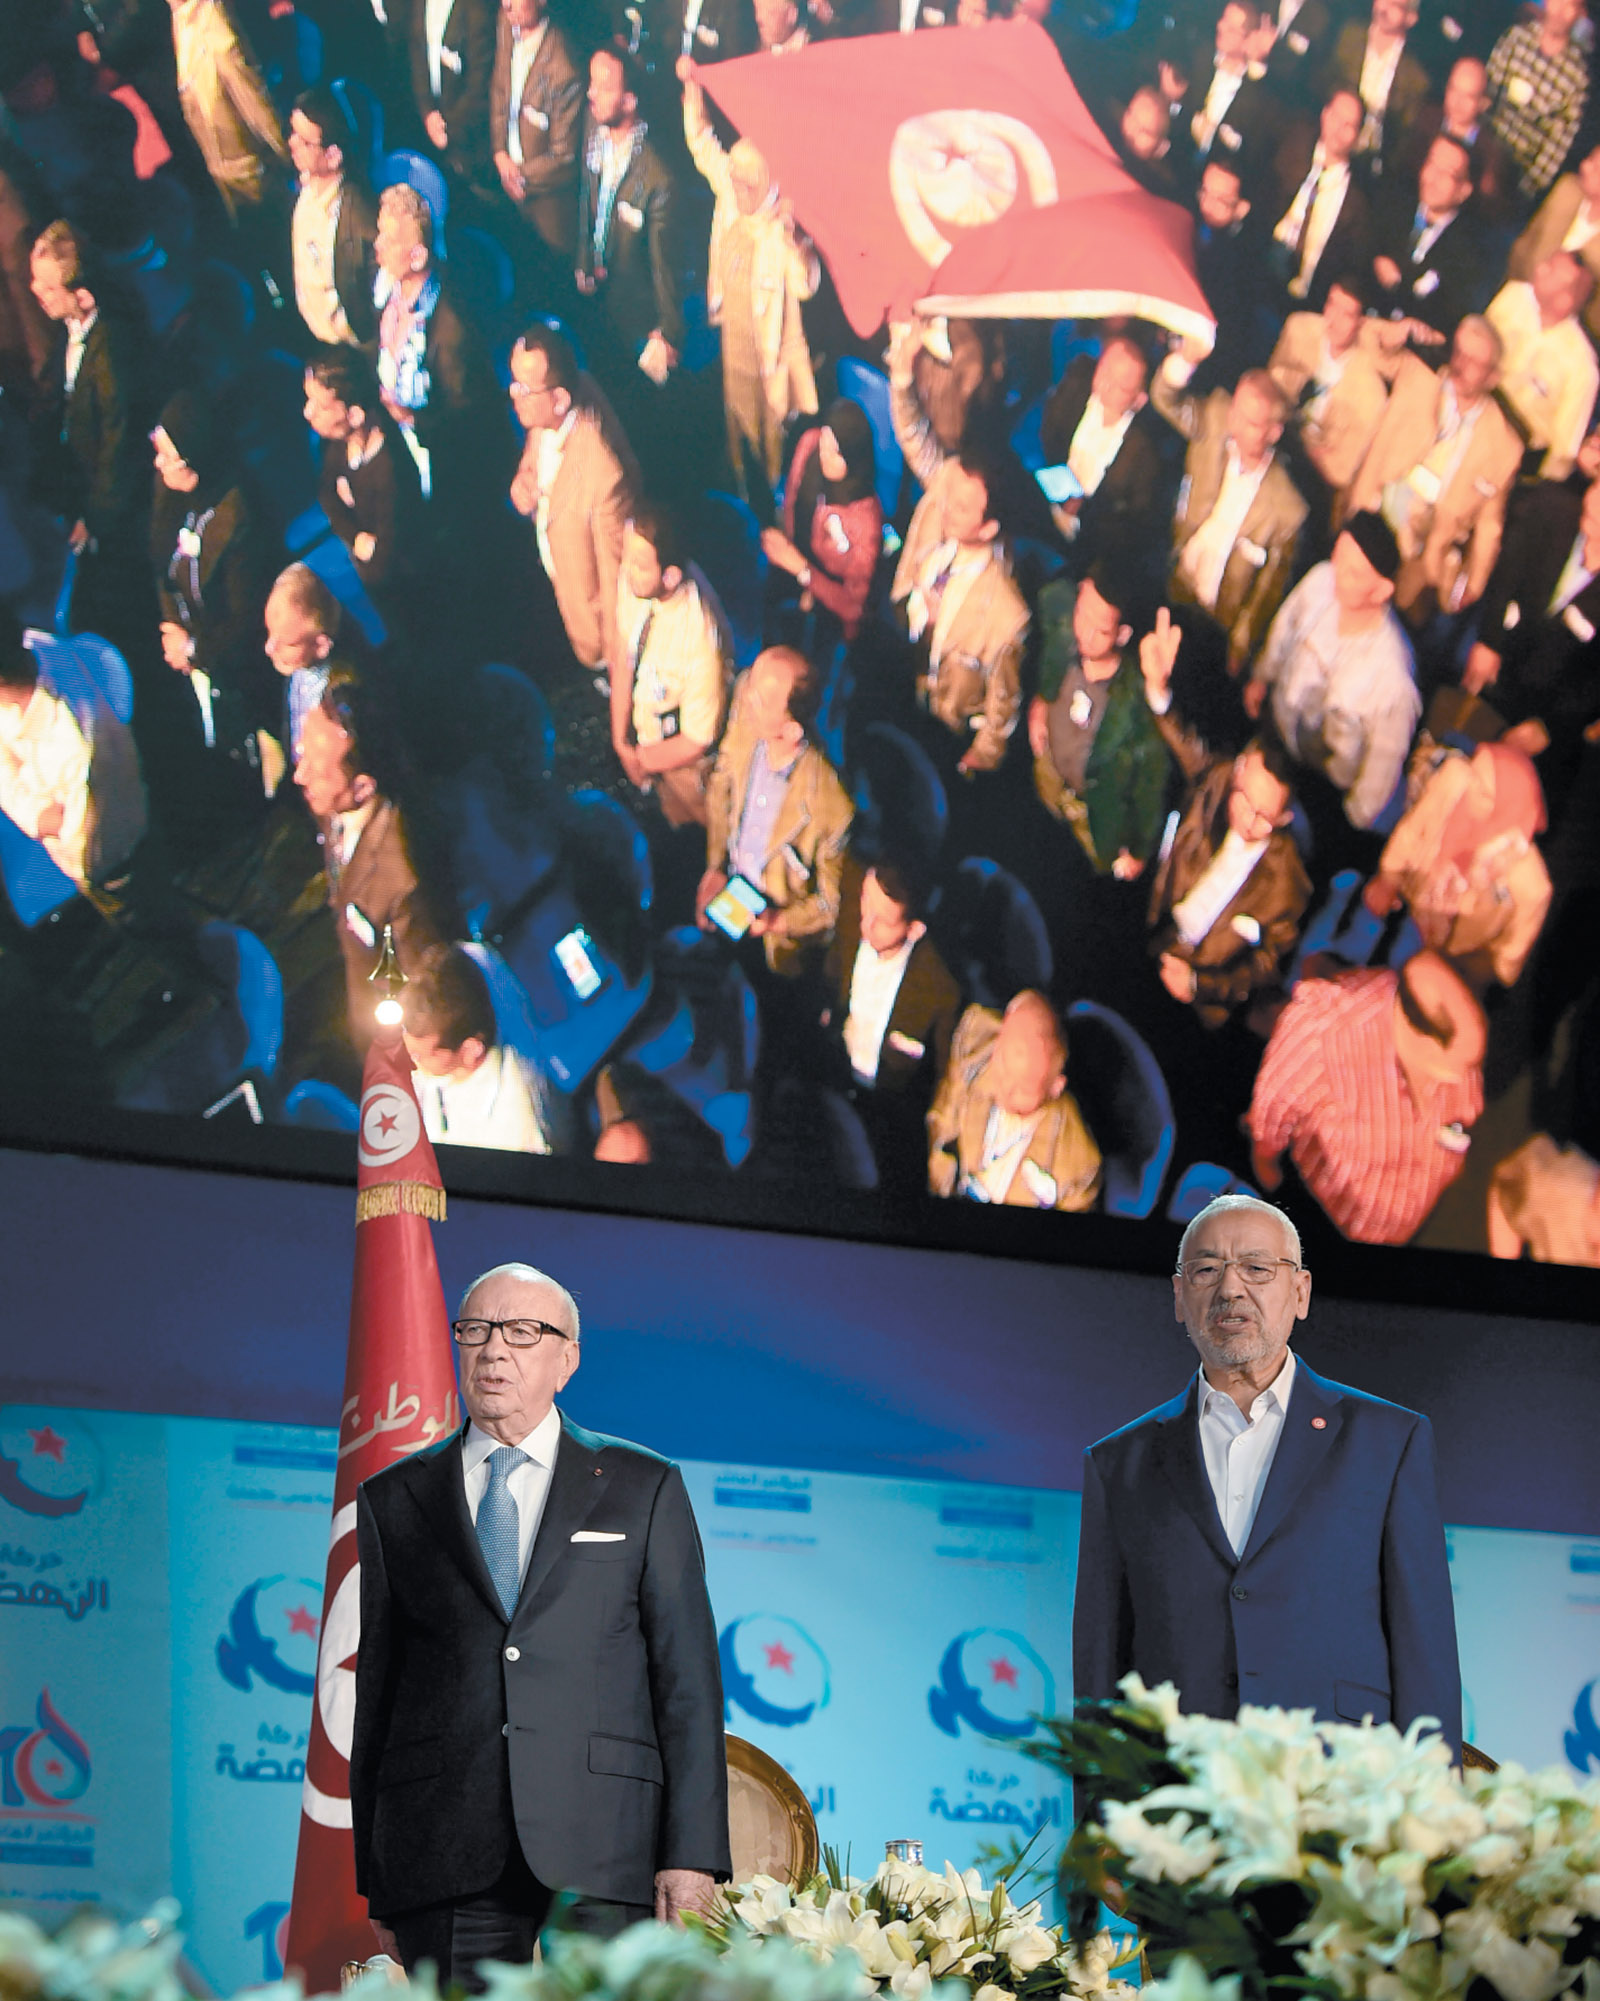 Tunisian President Beji Caid Essebsi and Islamist Ennahda Party leader Rachid Ghannouchi at the opening ceremony of Ennahda's congress, Tunis, May 2016